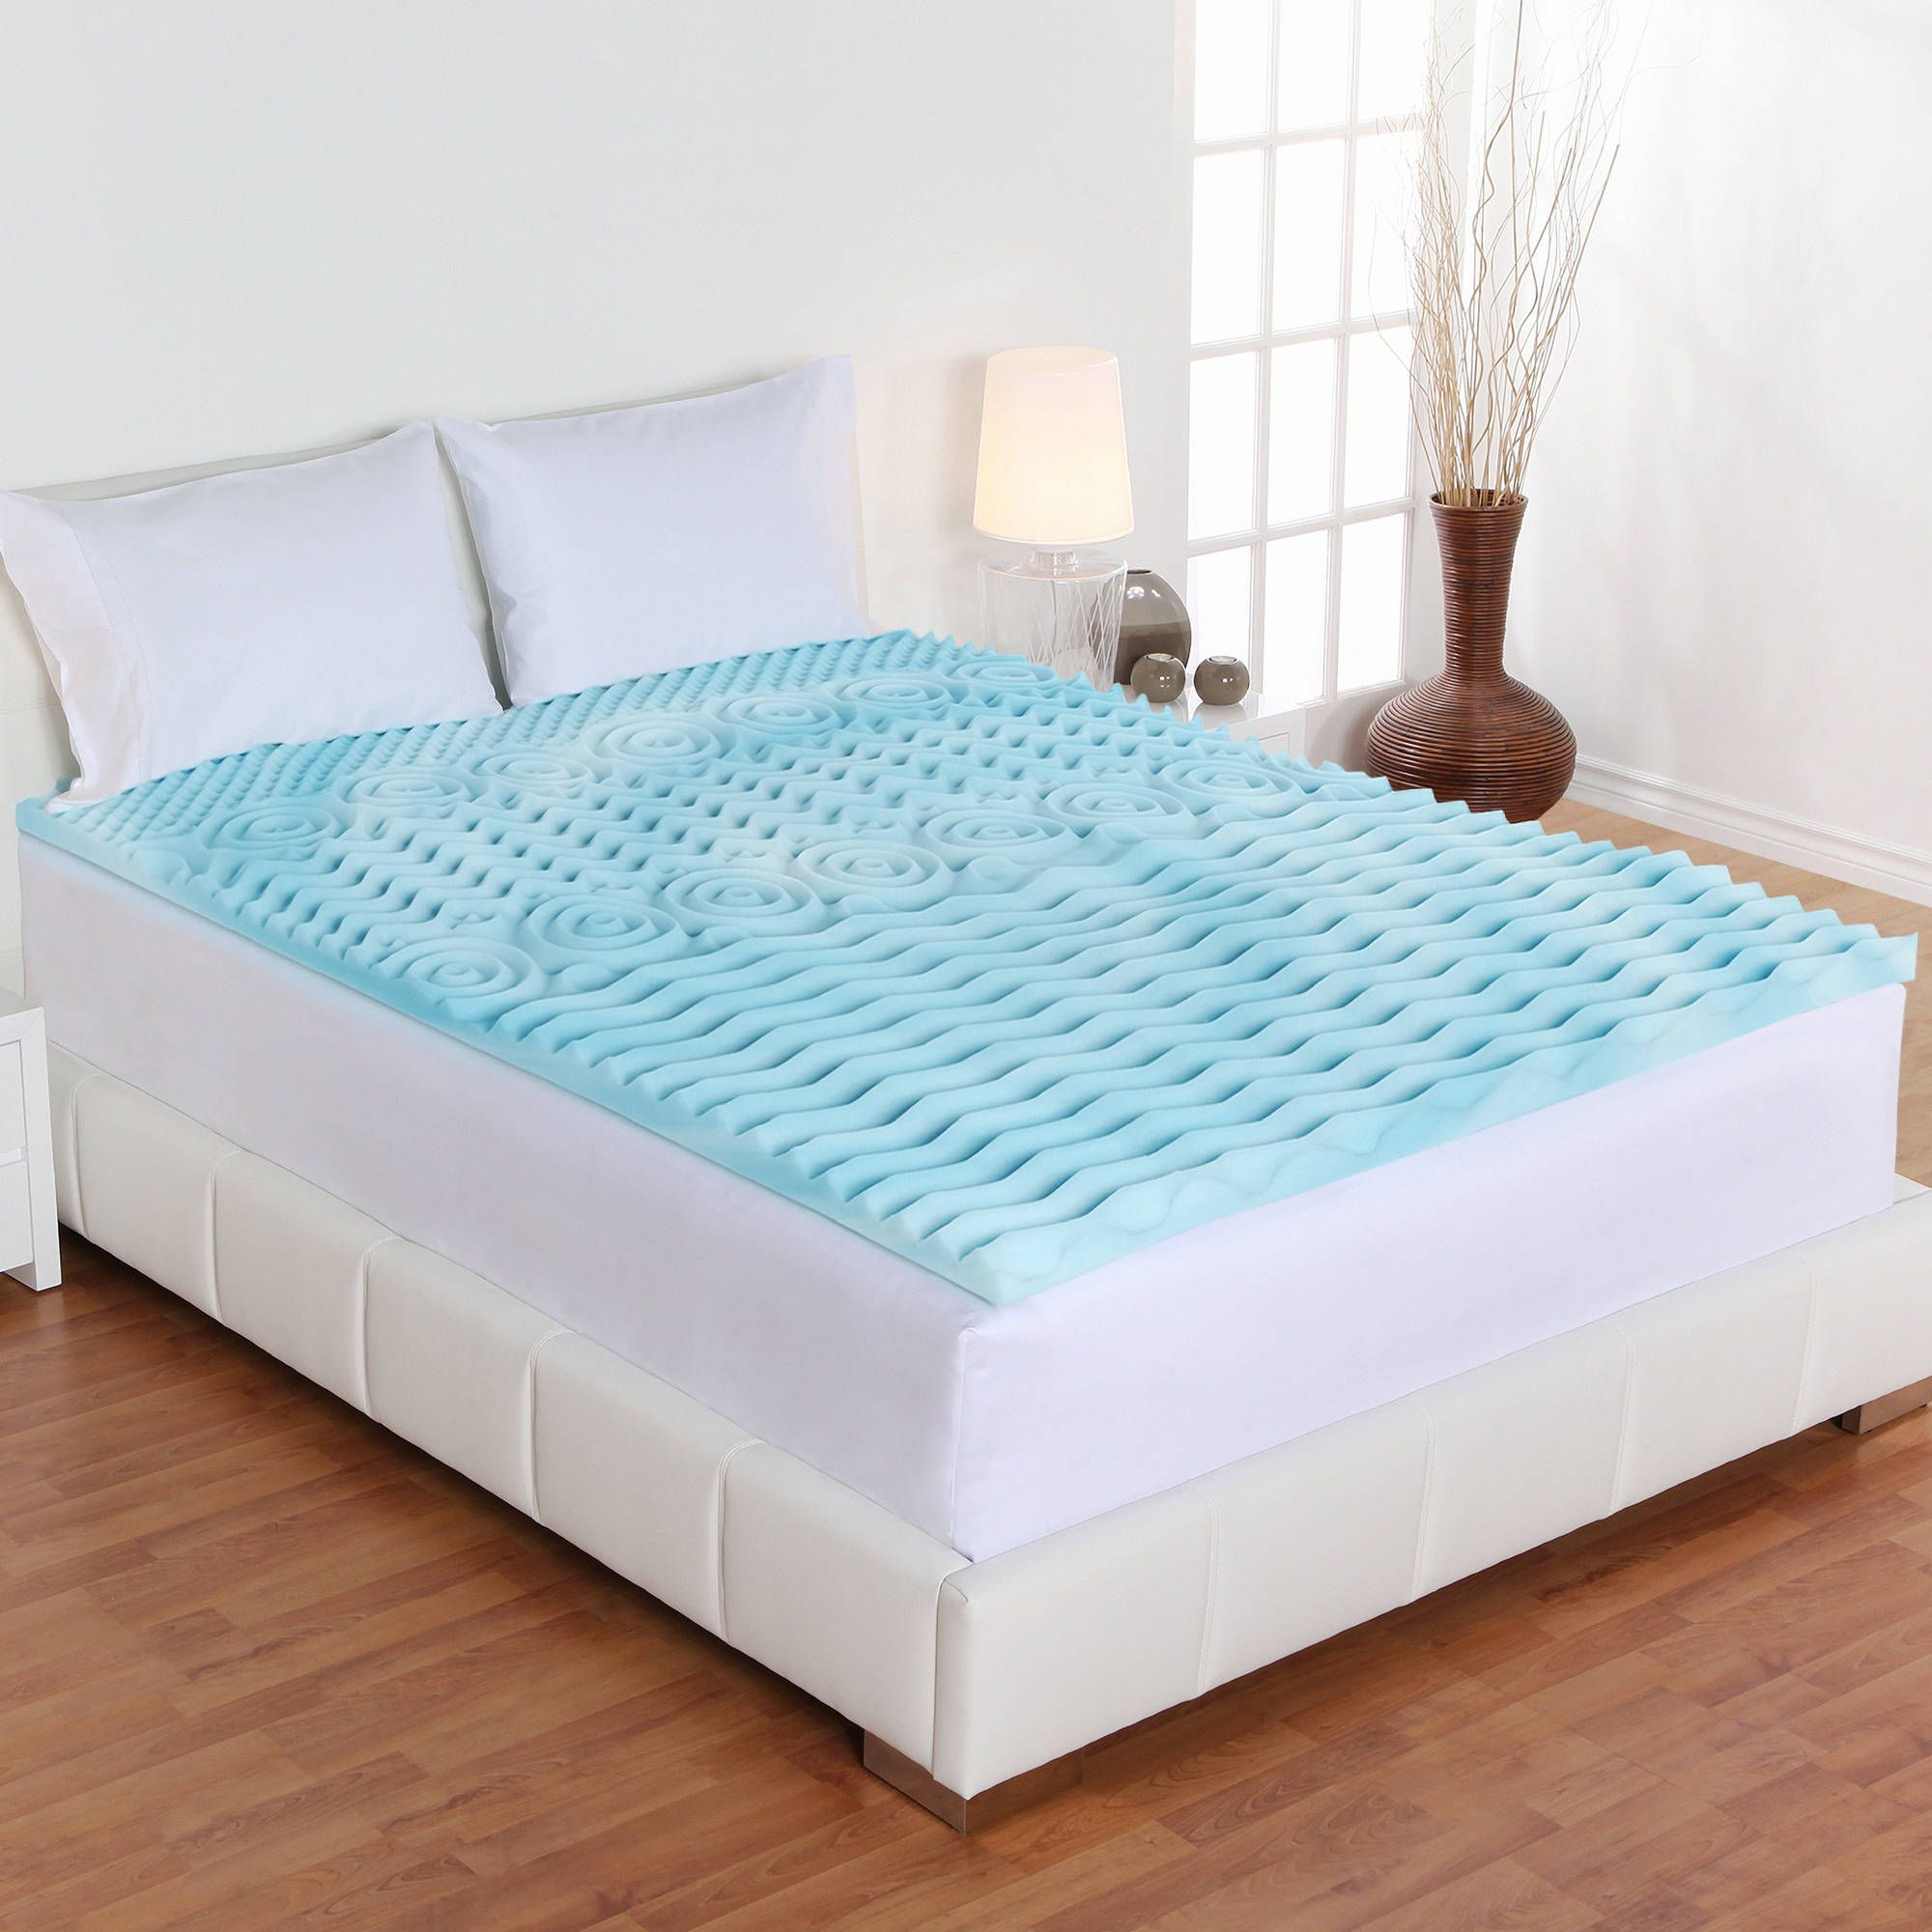 place best you mattress online the mattresses pin buy can to